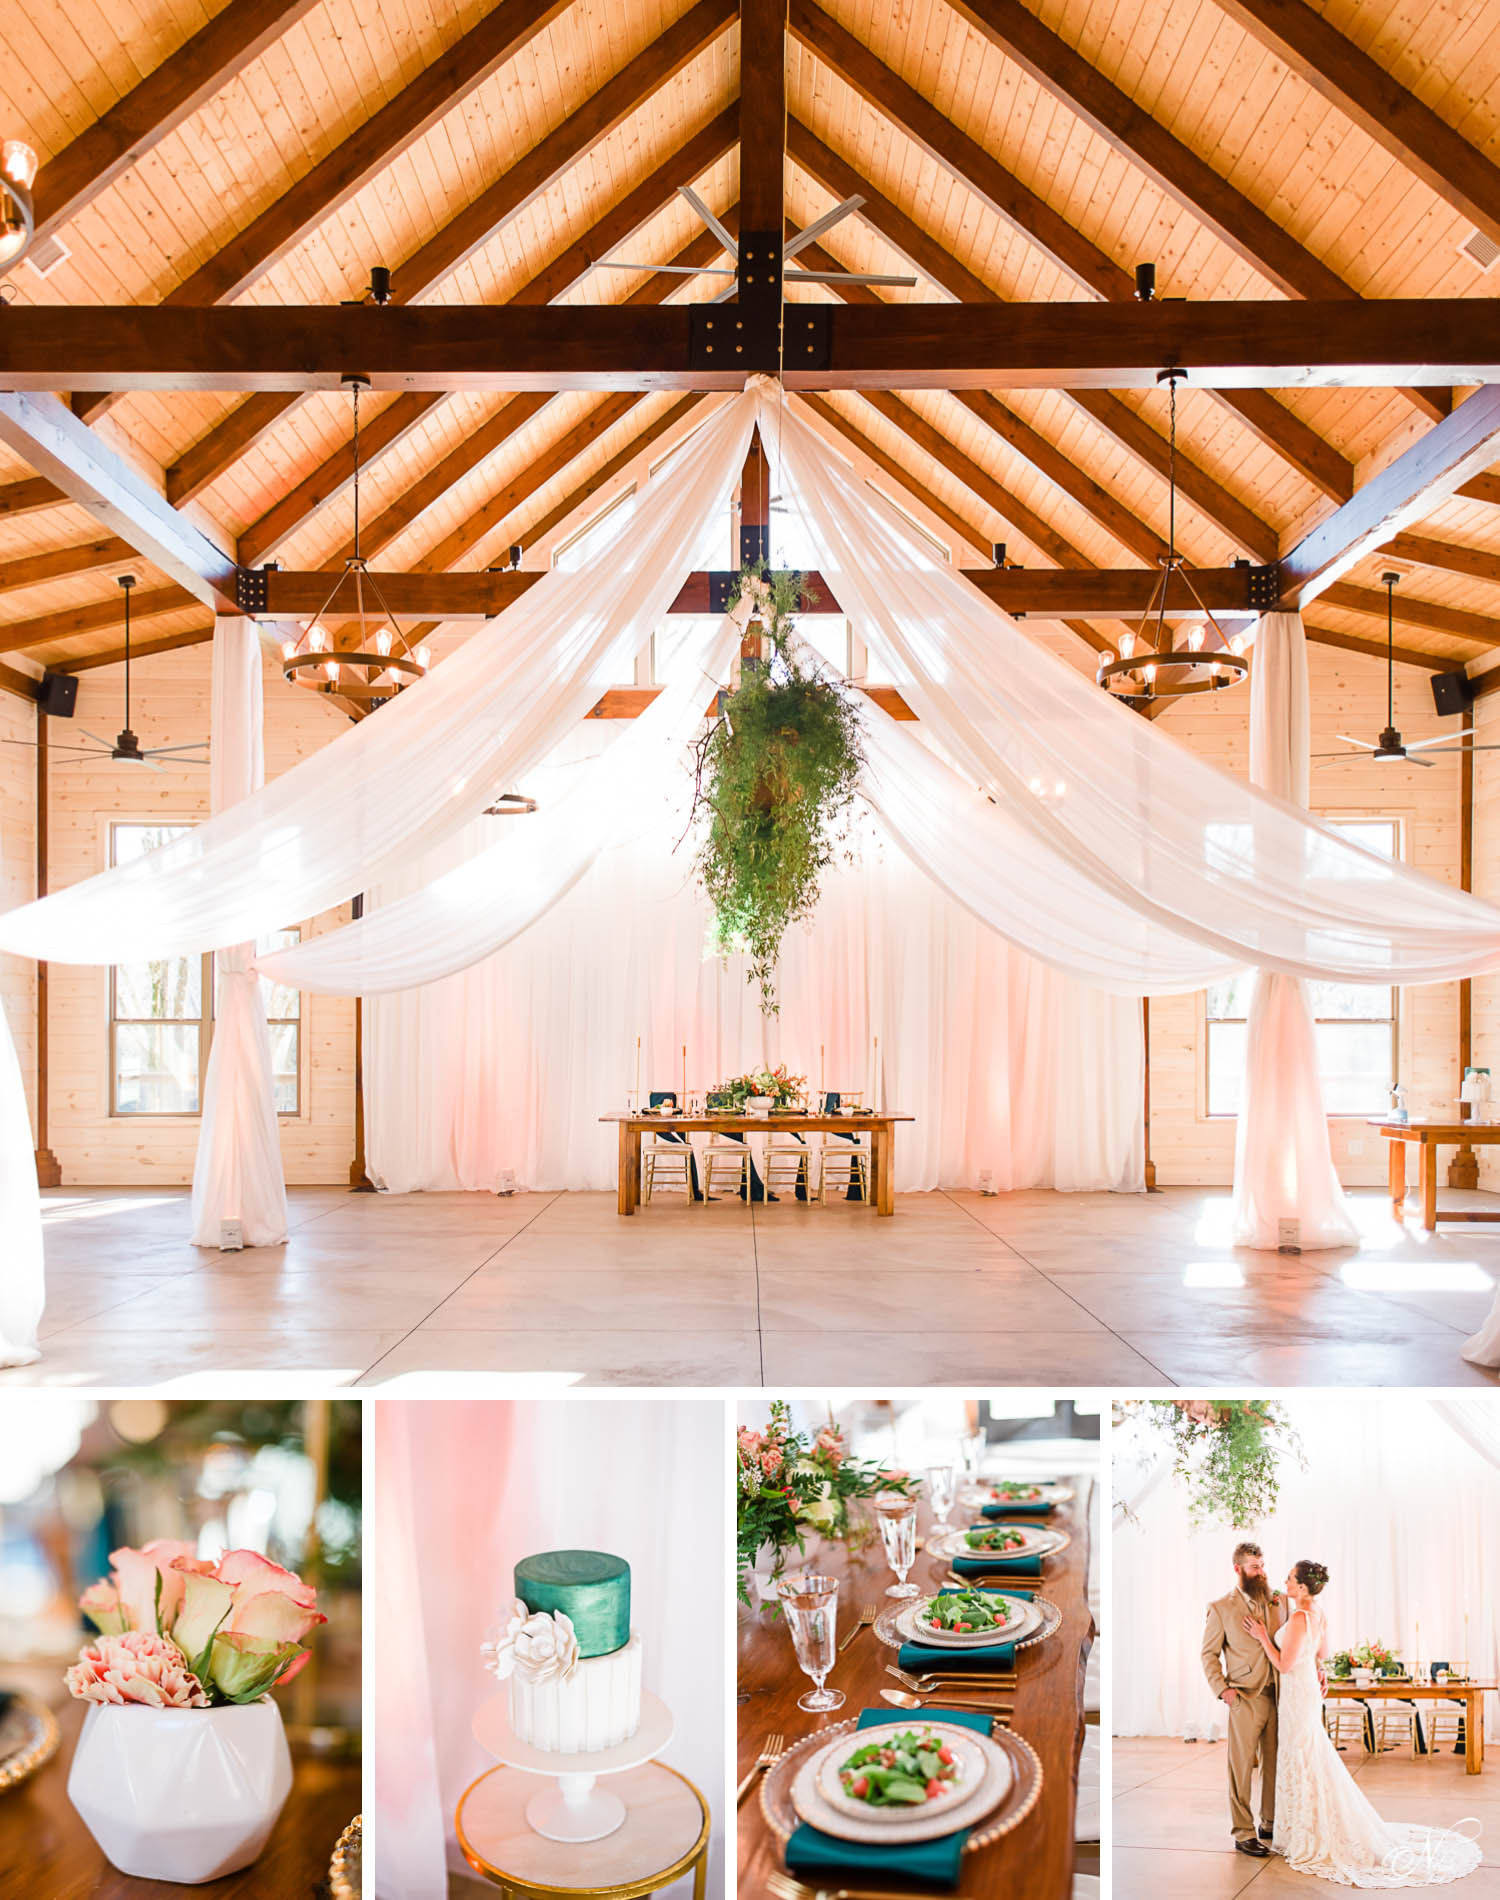 Modern Summer Elegance styled wedding reception in Emerald, Peach, and Gold at hiwassee river weddings